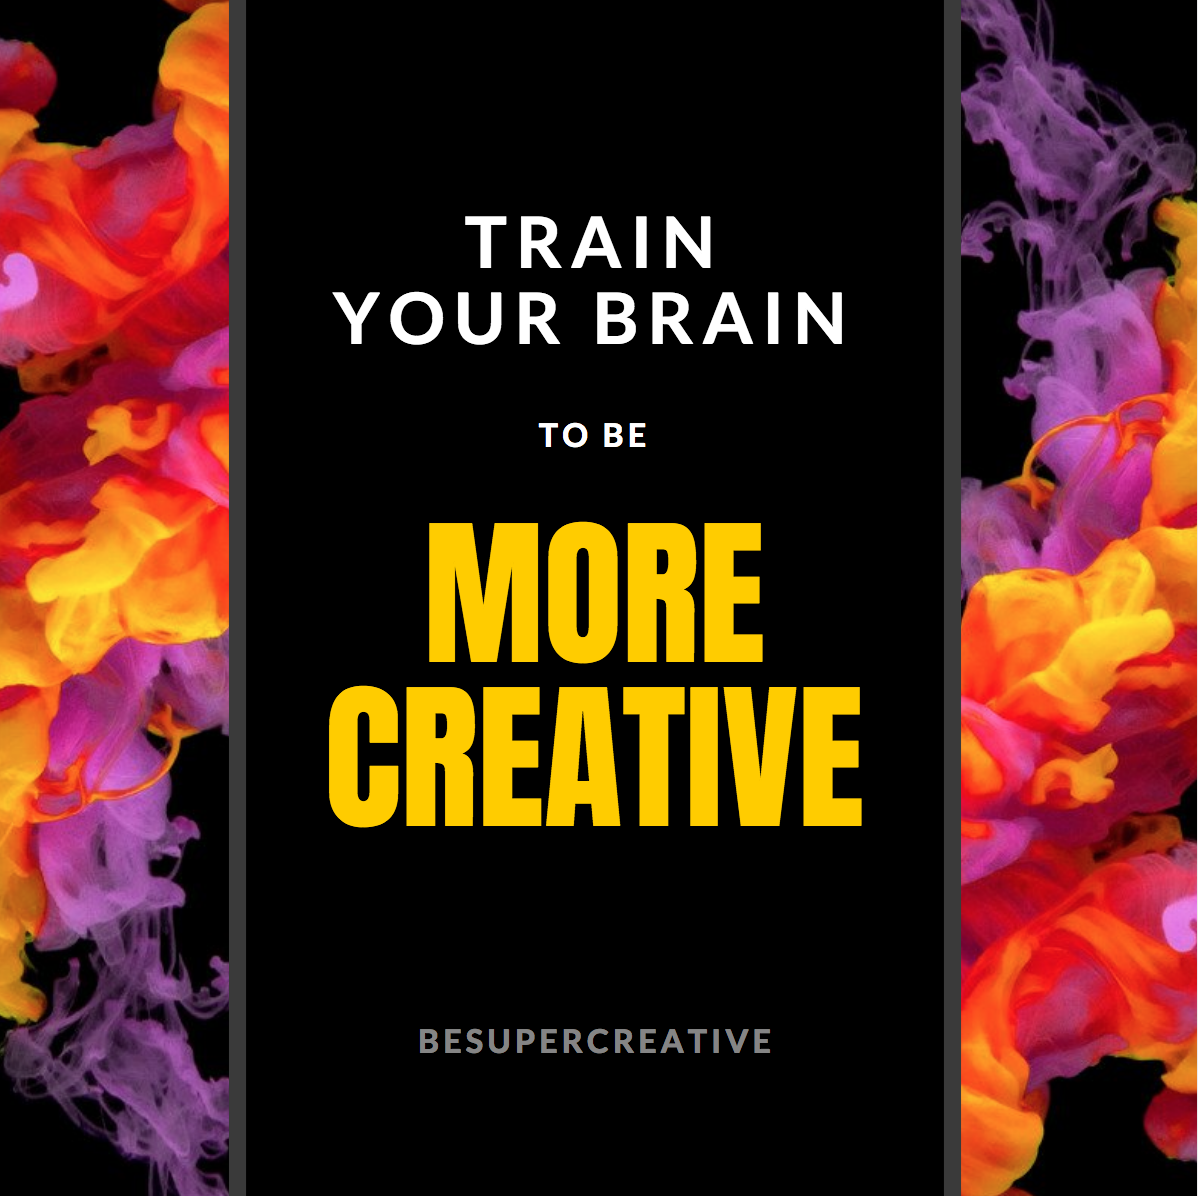 Train Your Brain to Be More Creative